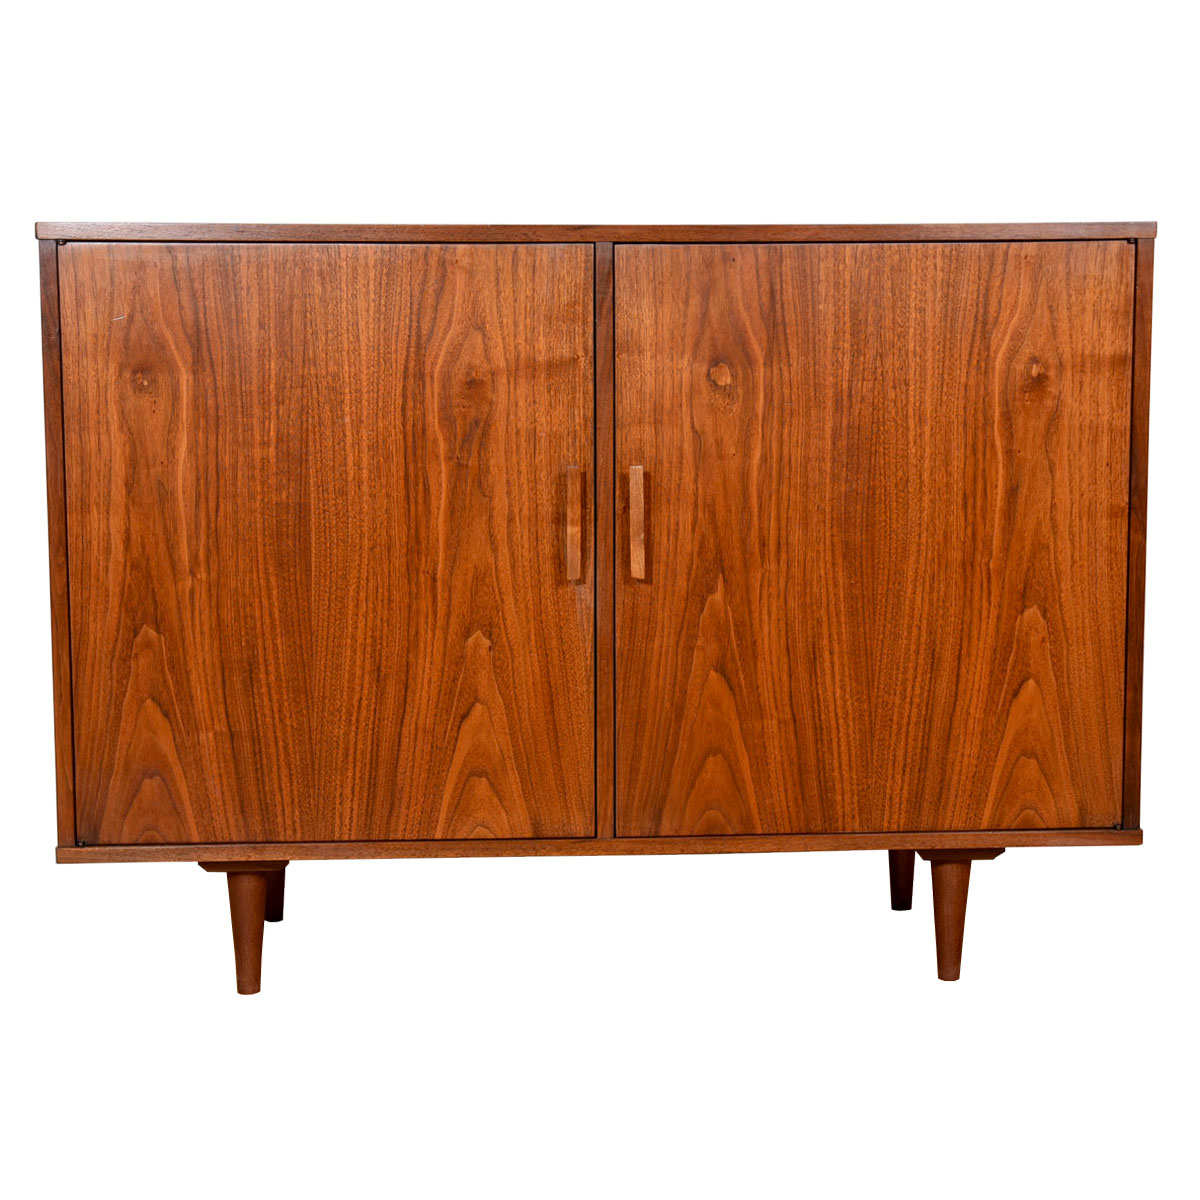 Spaciously Compact MCM Cabinet in Walnut — Custom Designed for Vinyl Storage